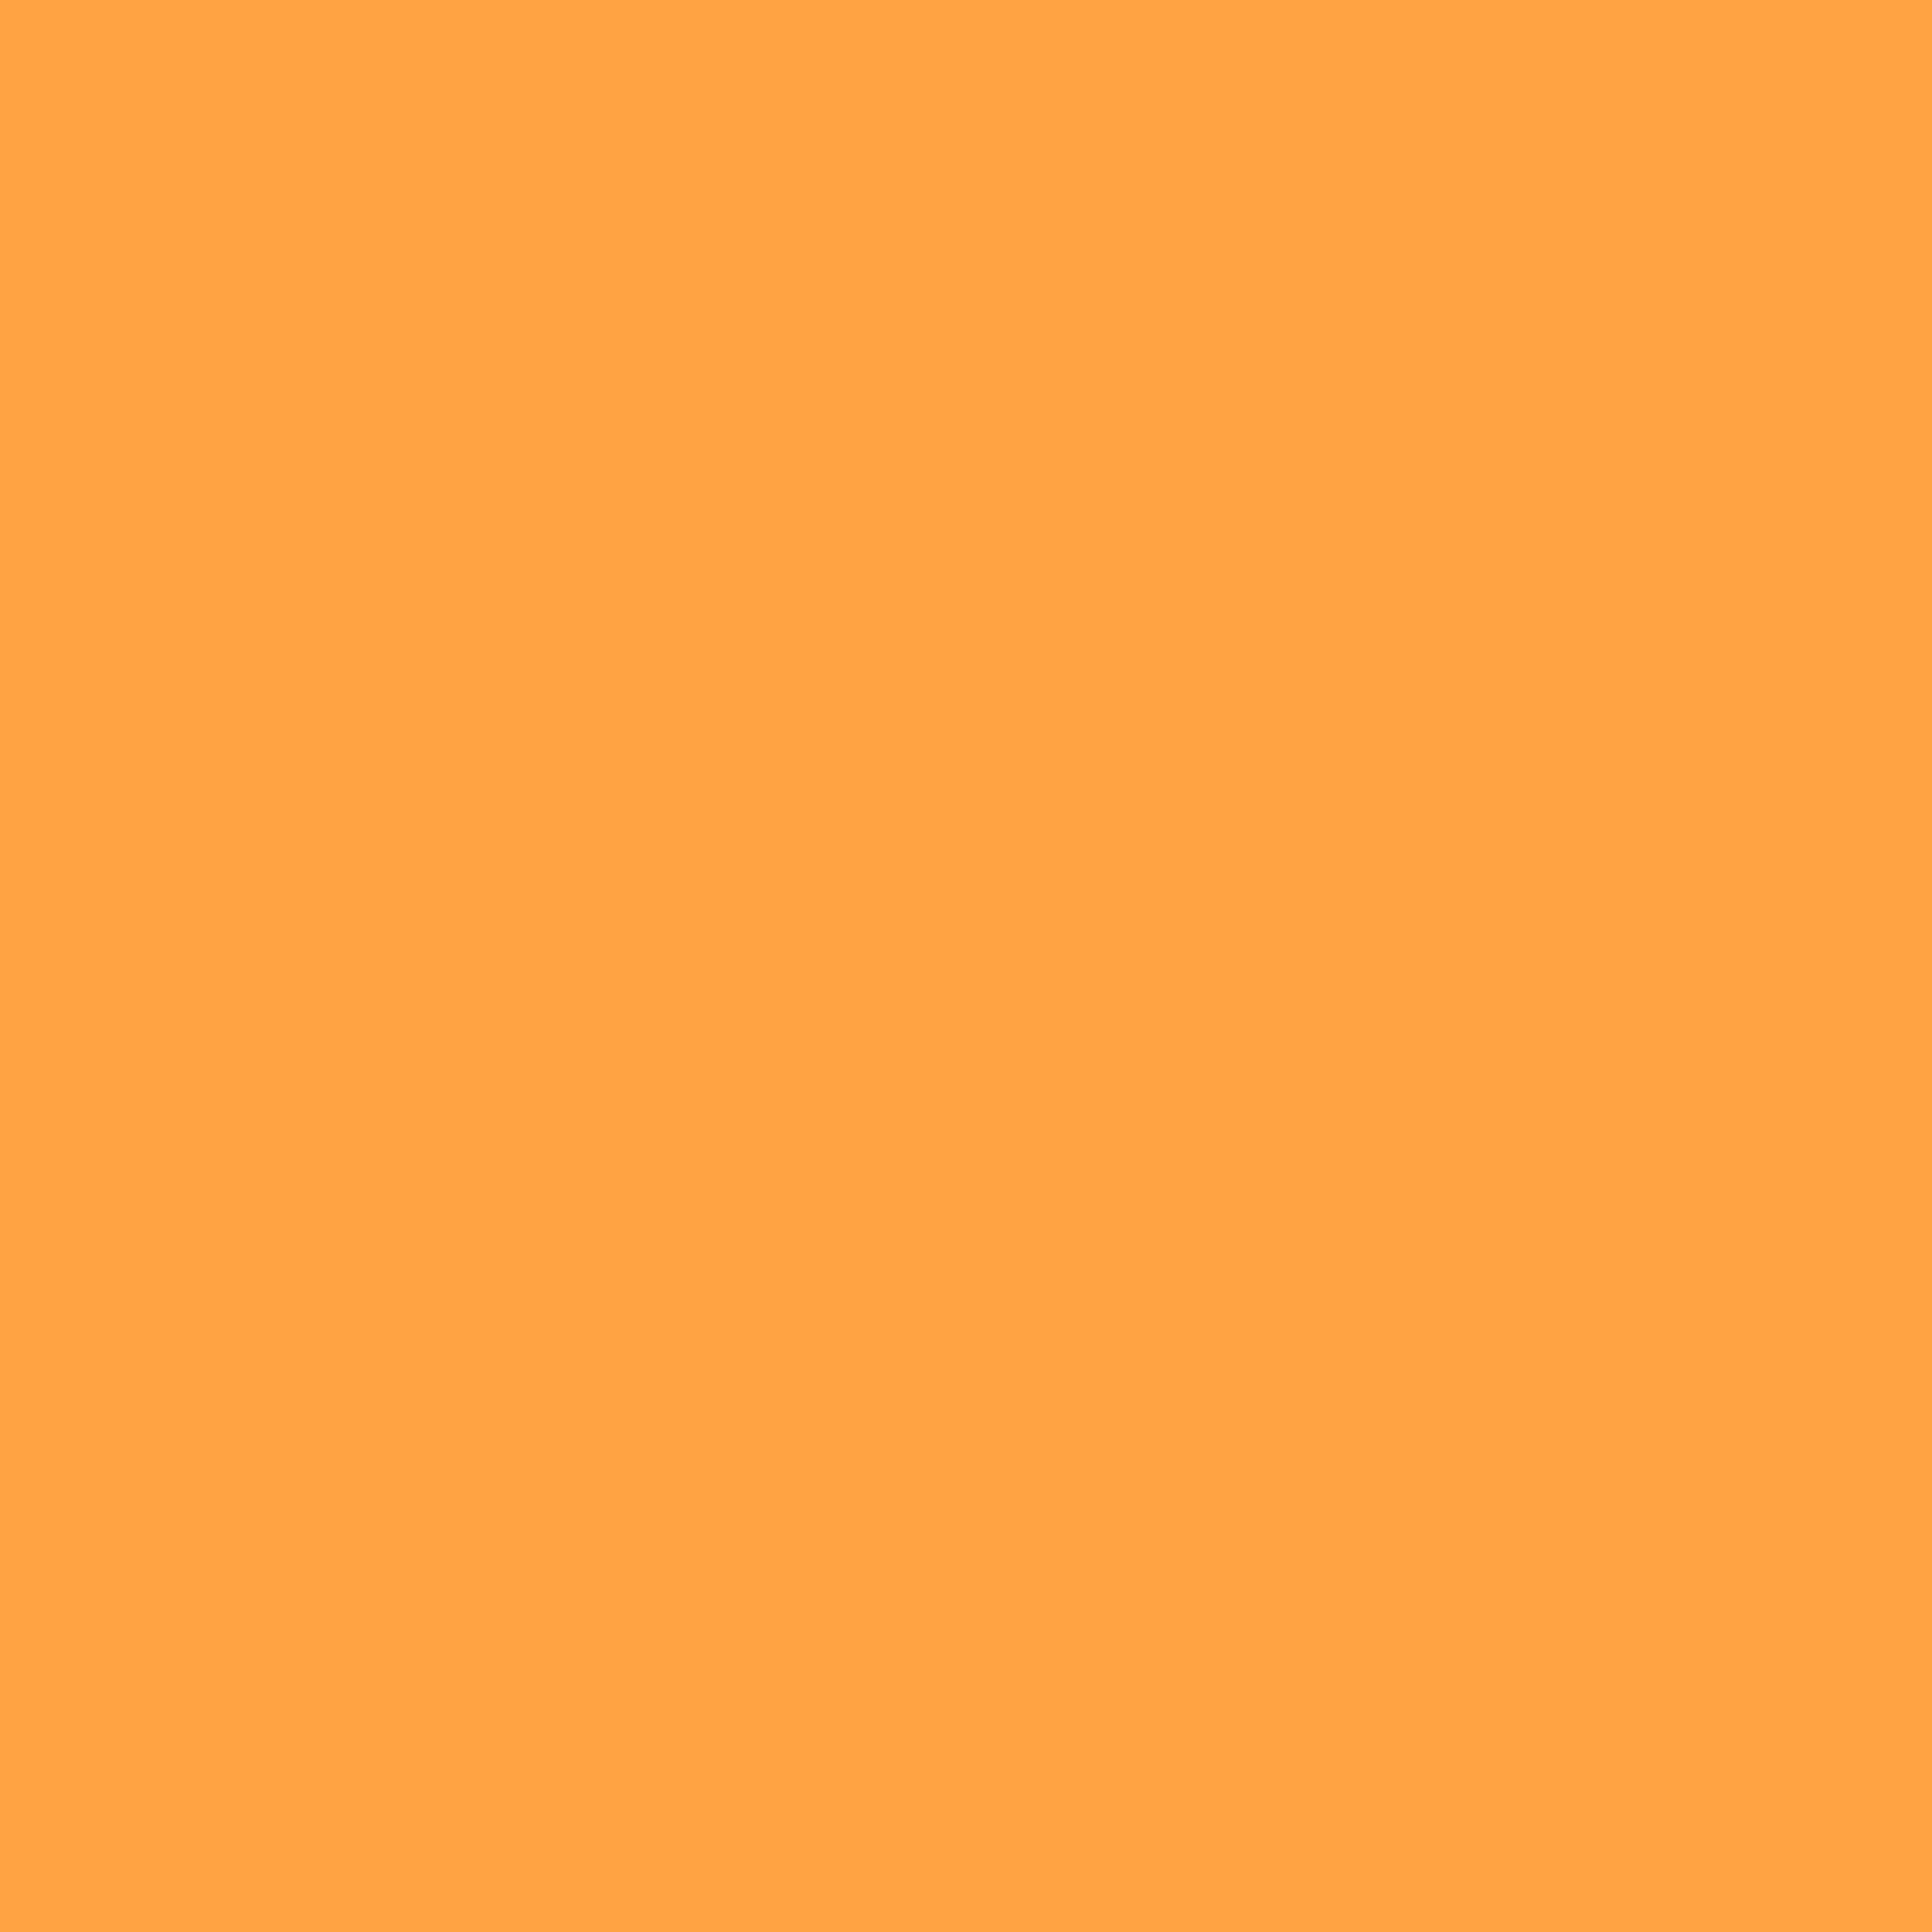 2732x2732 Neon Carrot Solid Color Background